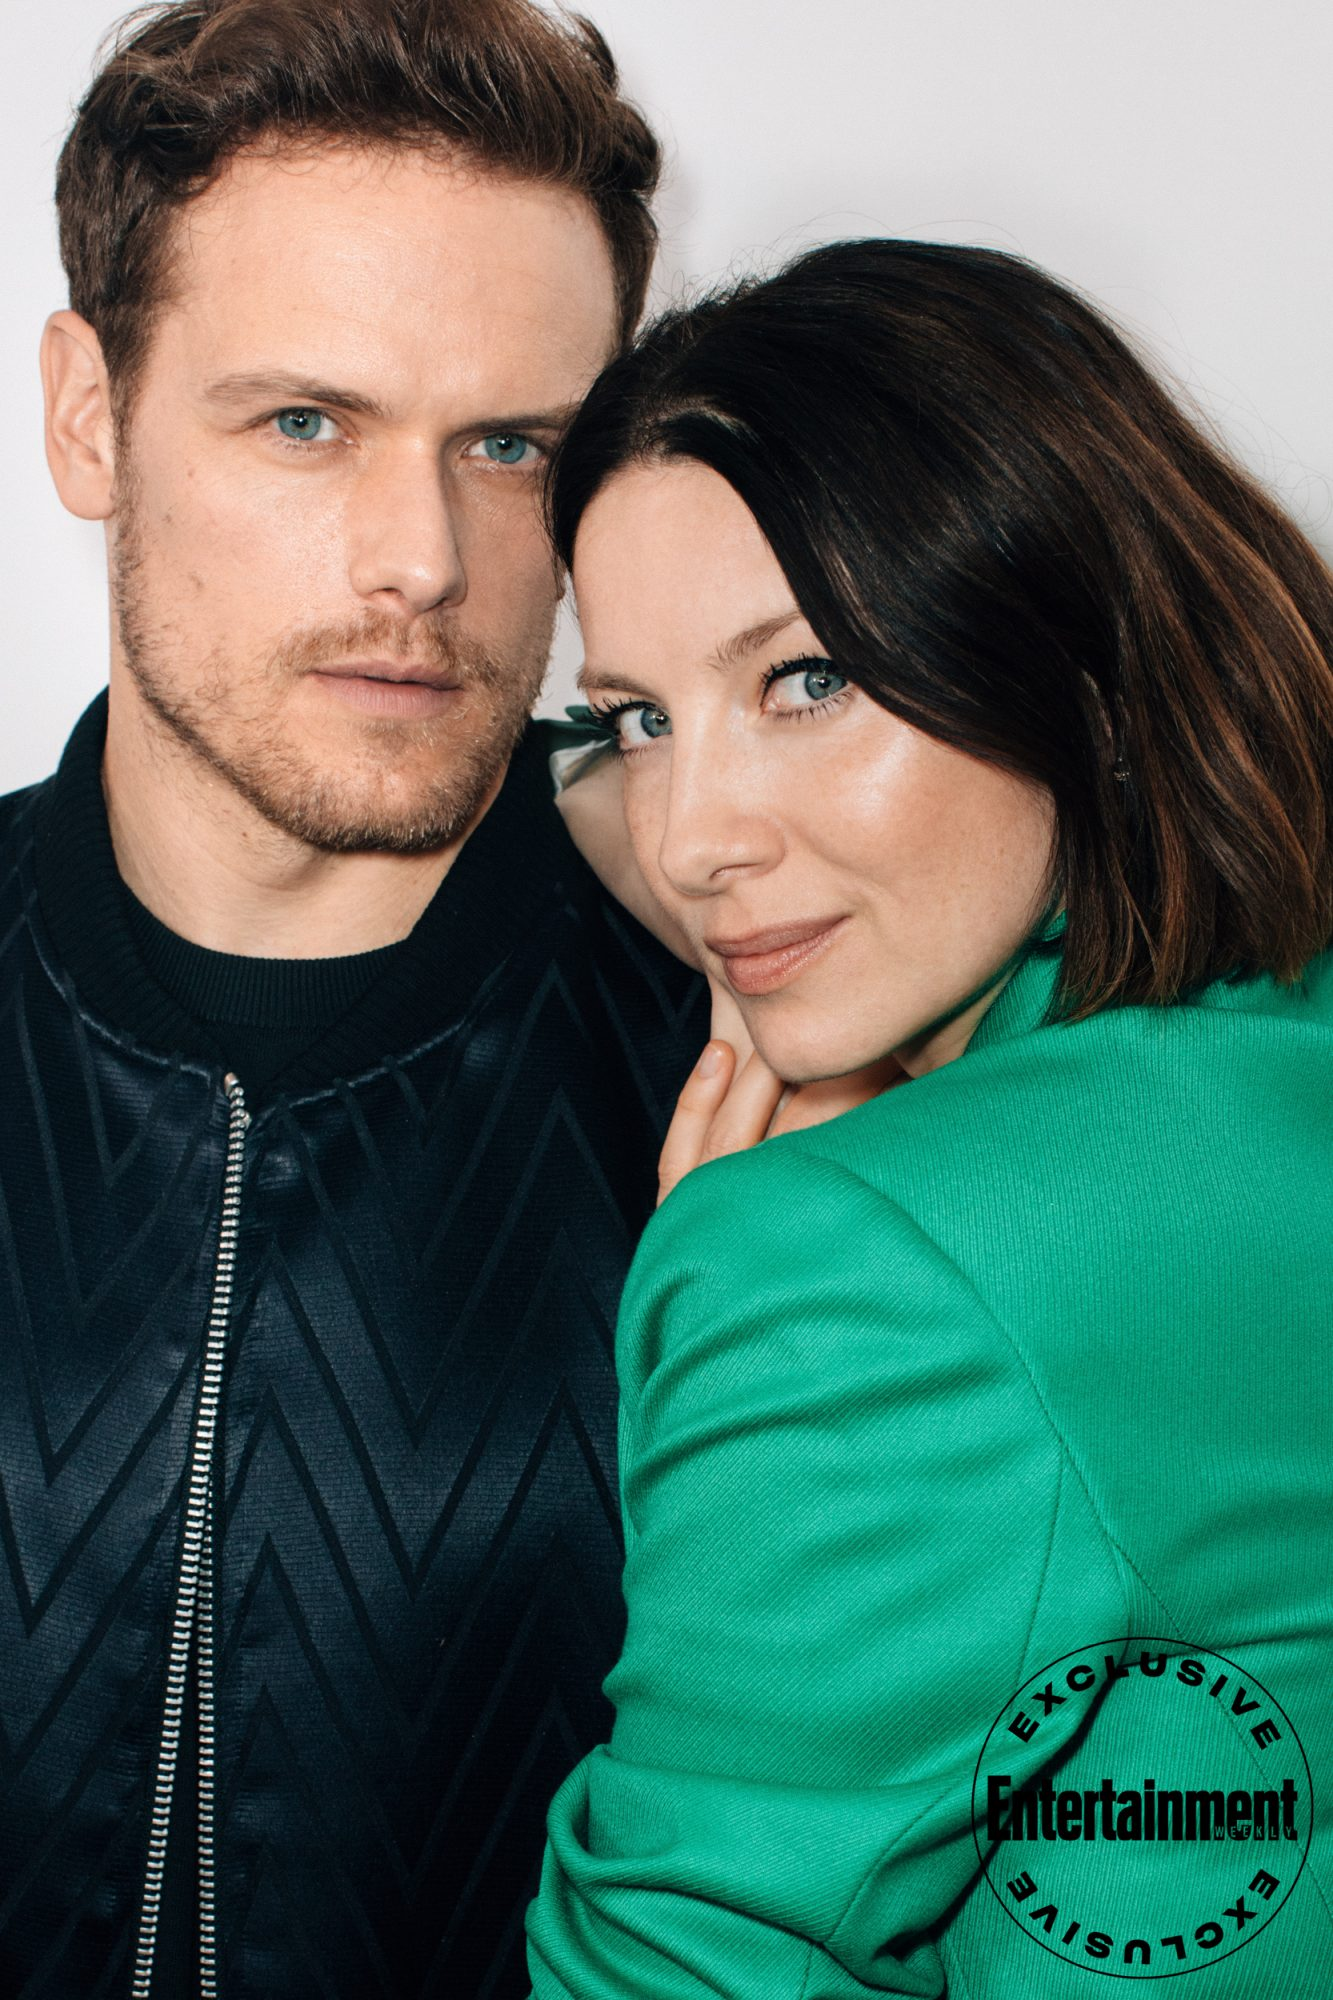 Sam Heughan and Caitriona Balfe from Outlander